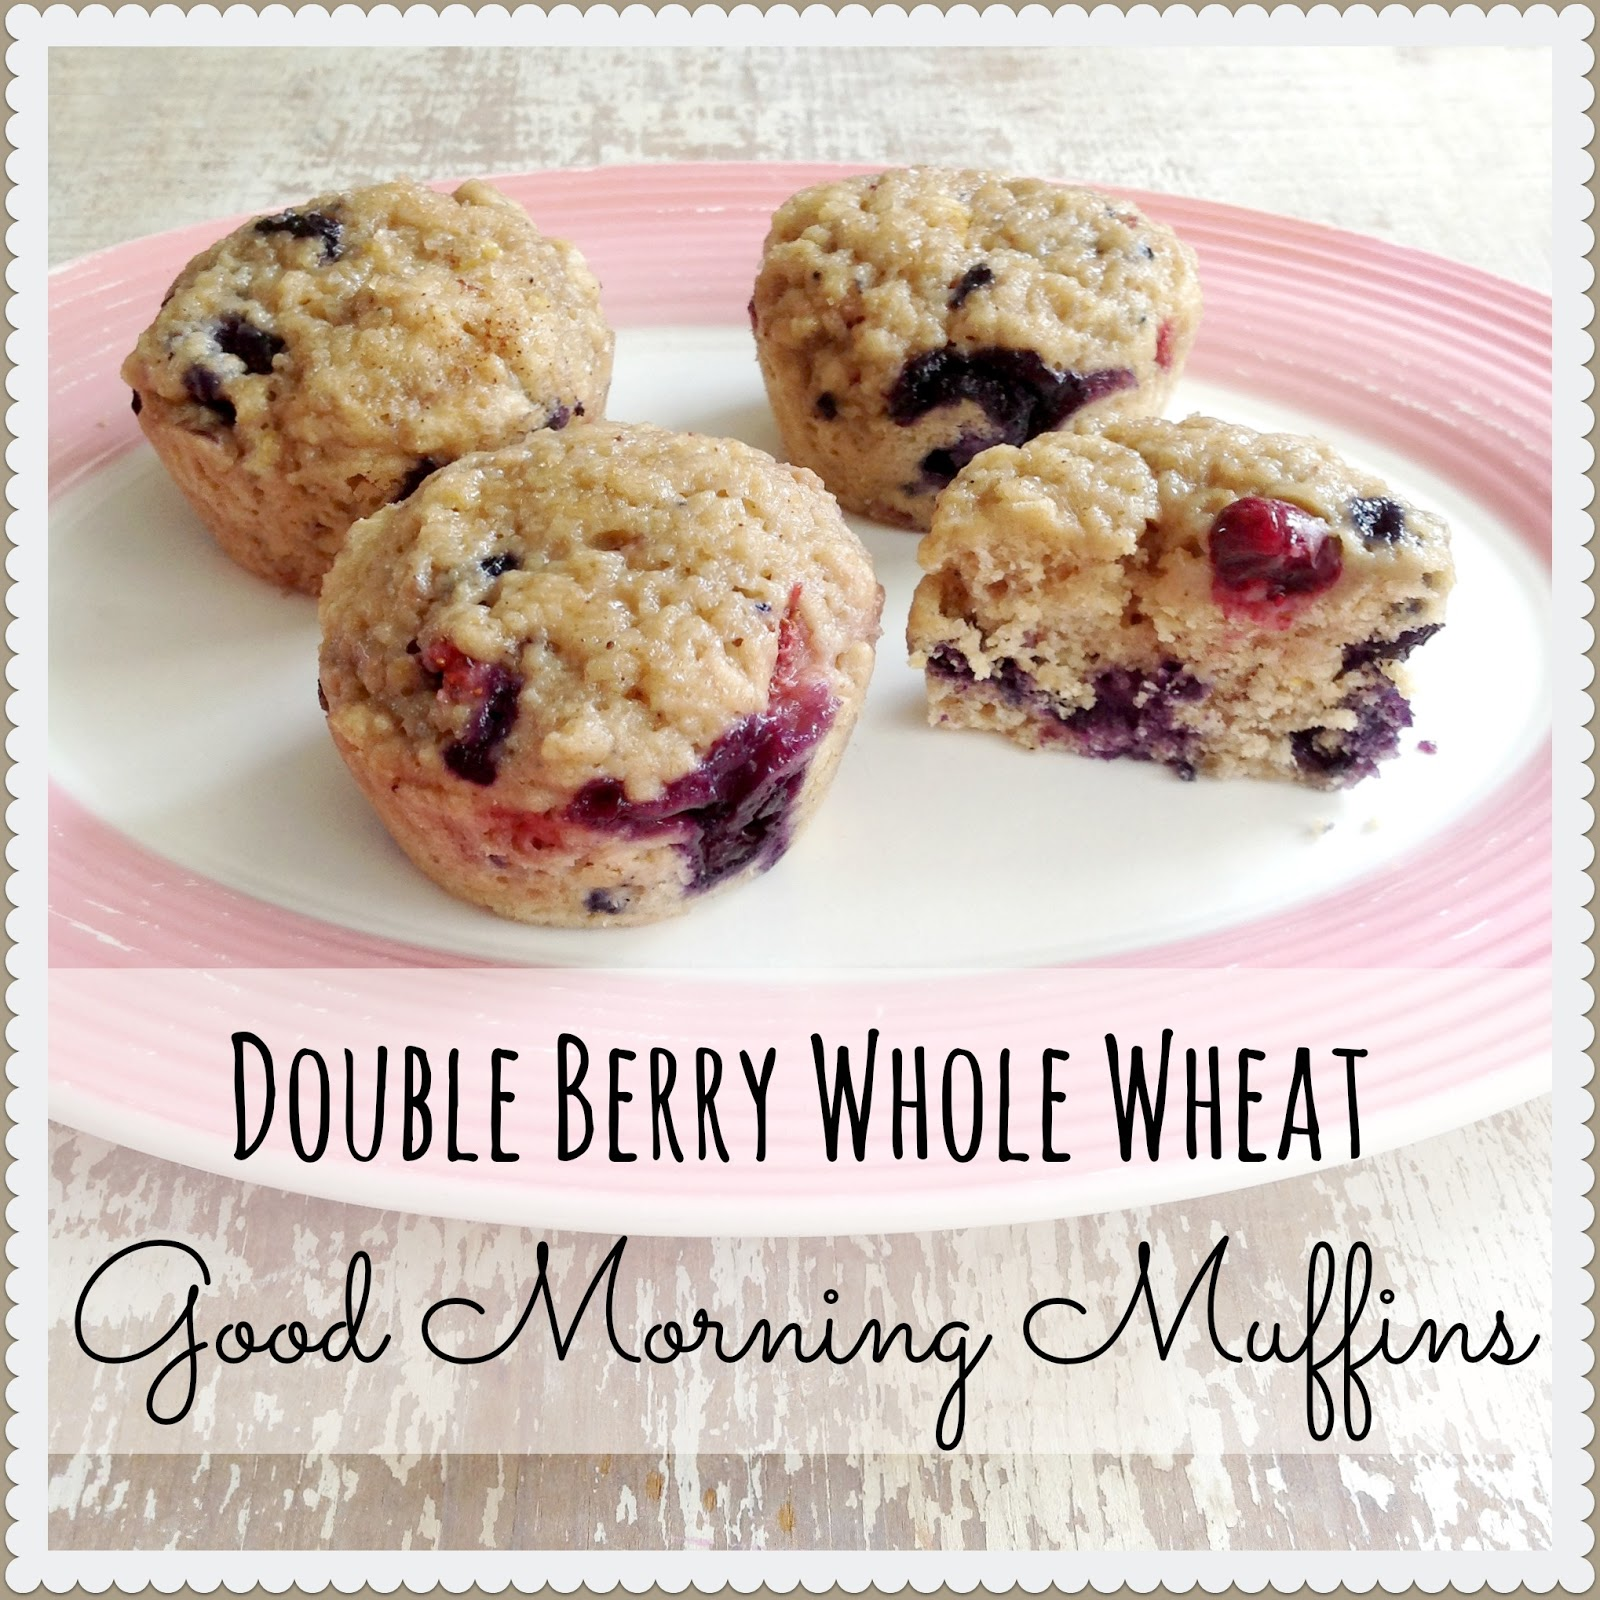 Double Berry Whole Wheat Good Morning Muffins